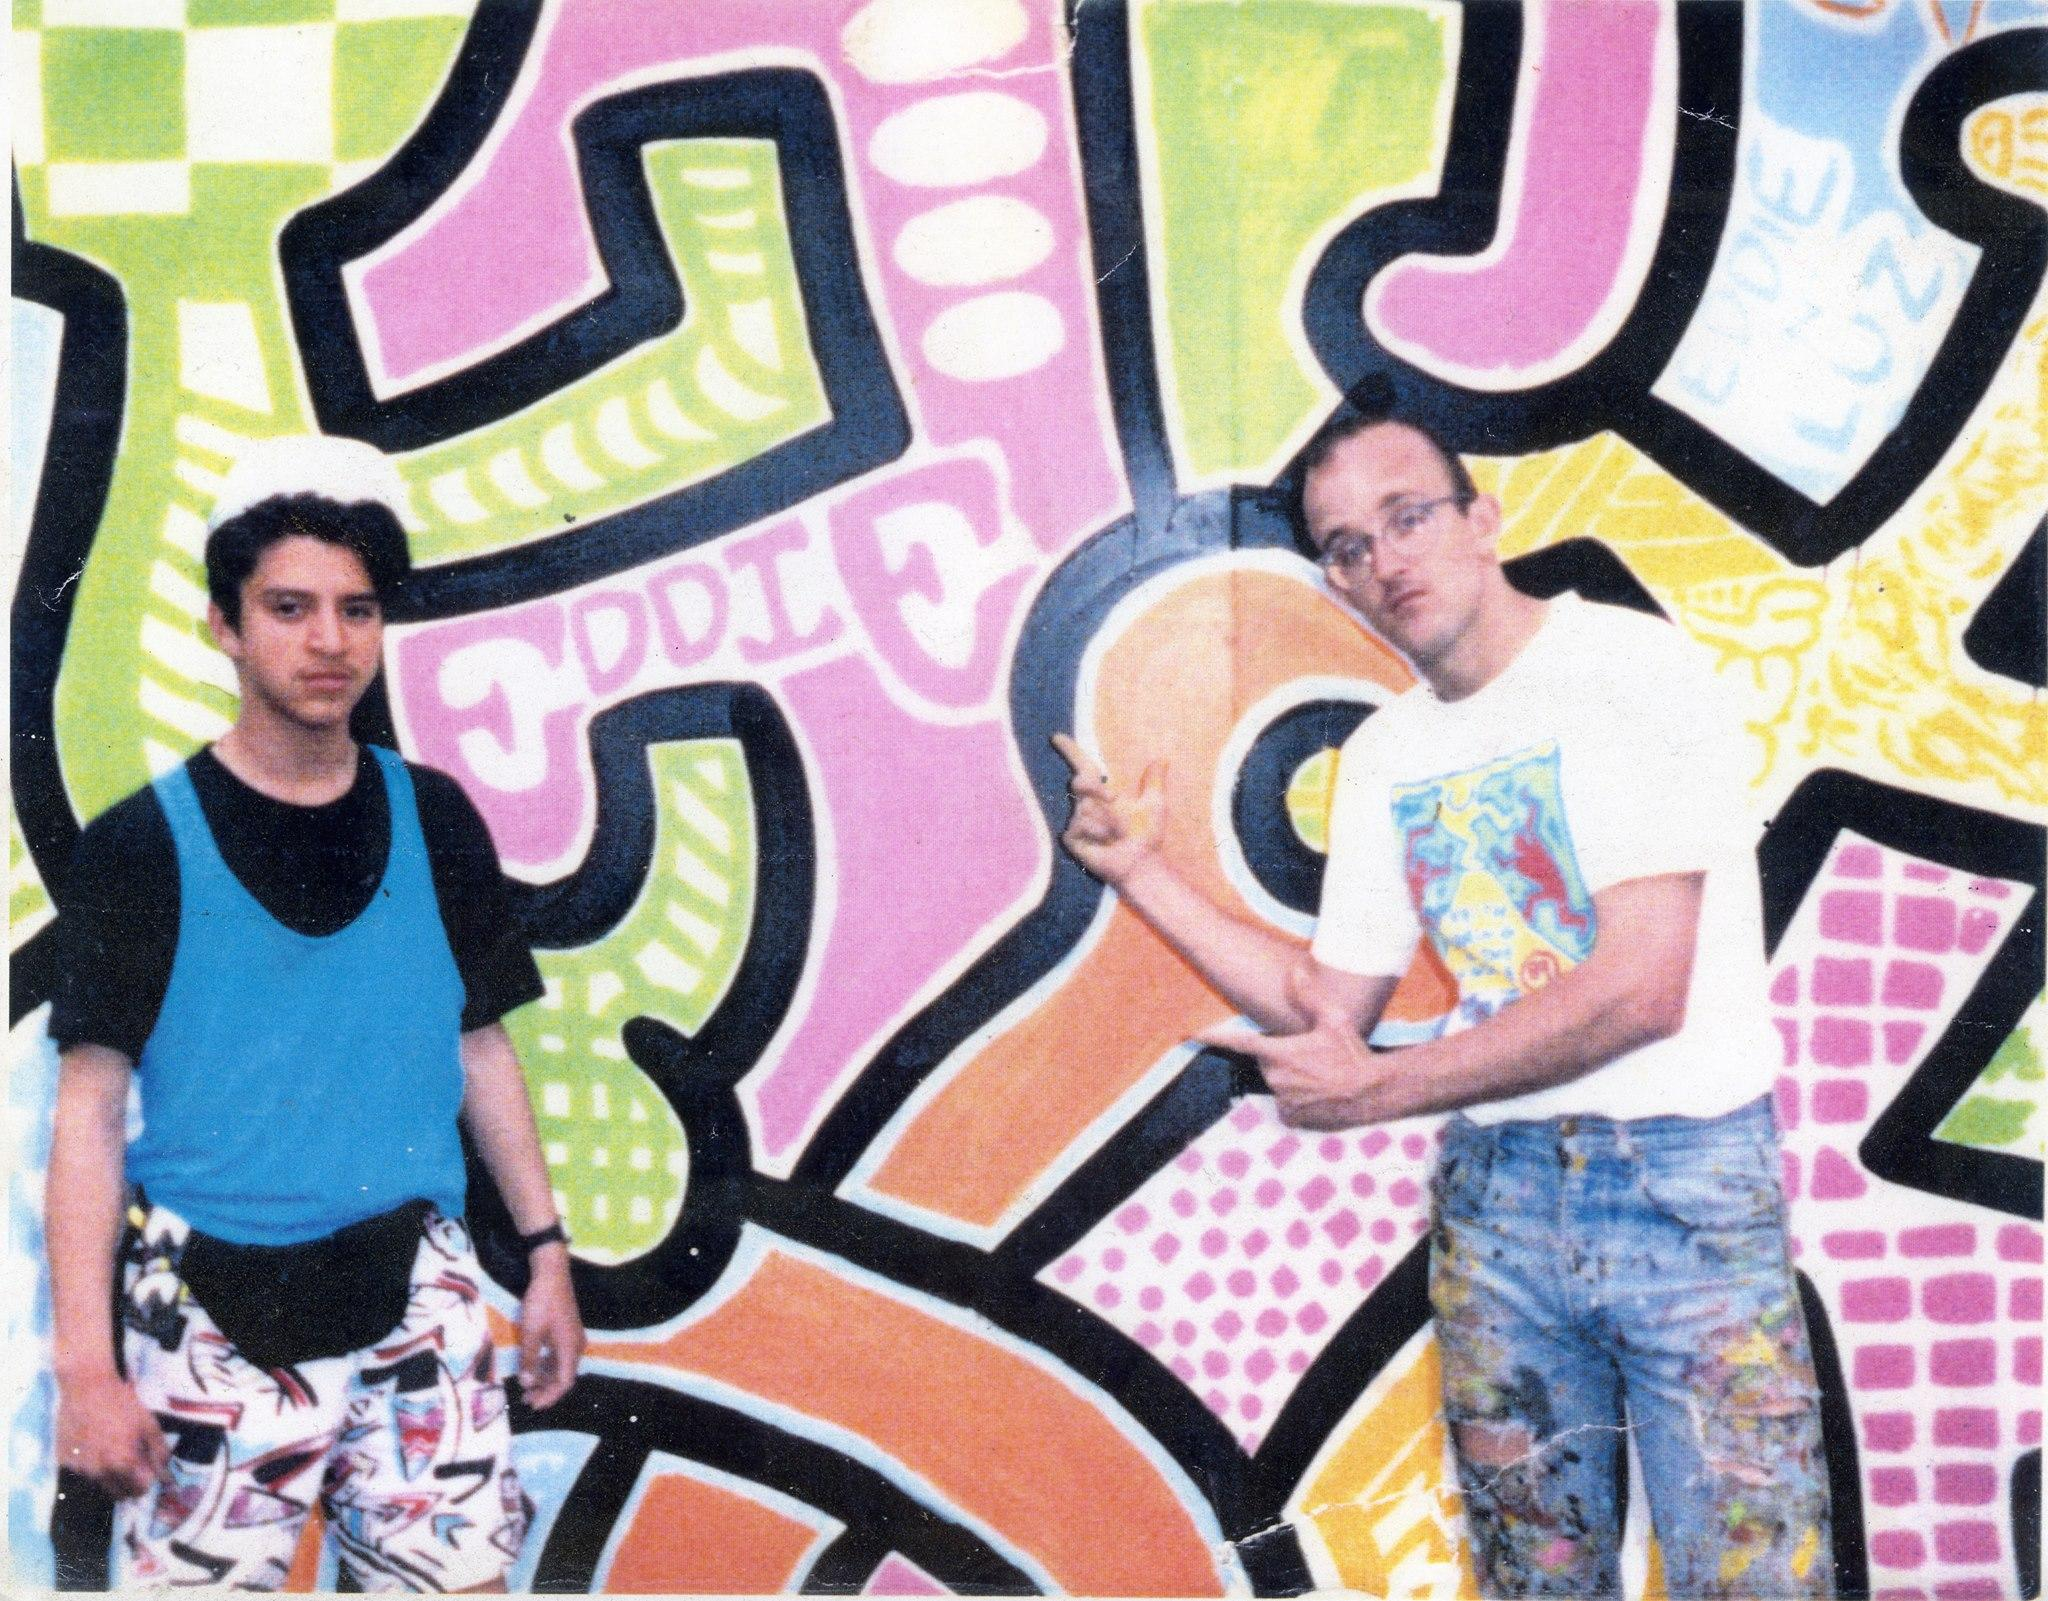 Eddie Alvarado and Keith Haring in 1989.